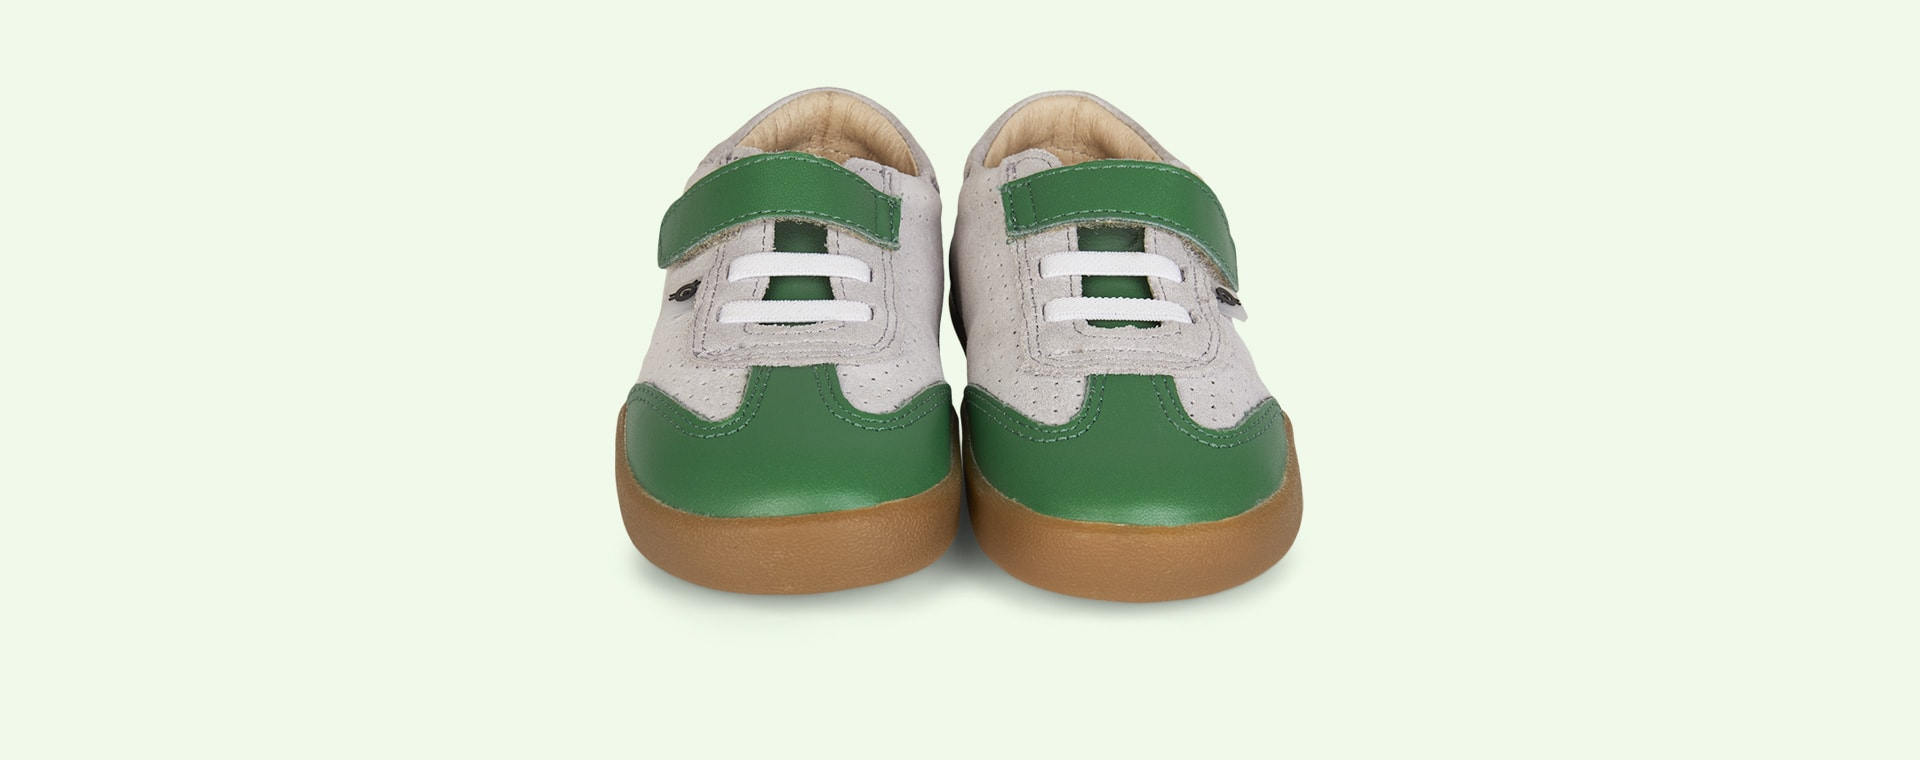 Green old soles Leezy Trainer Shoe